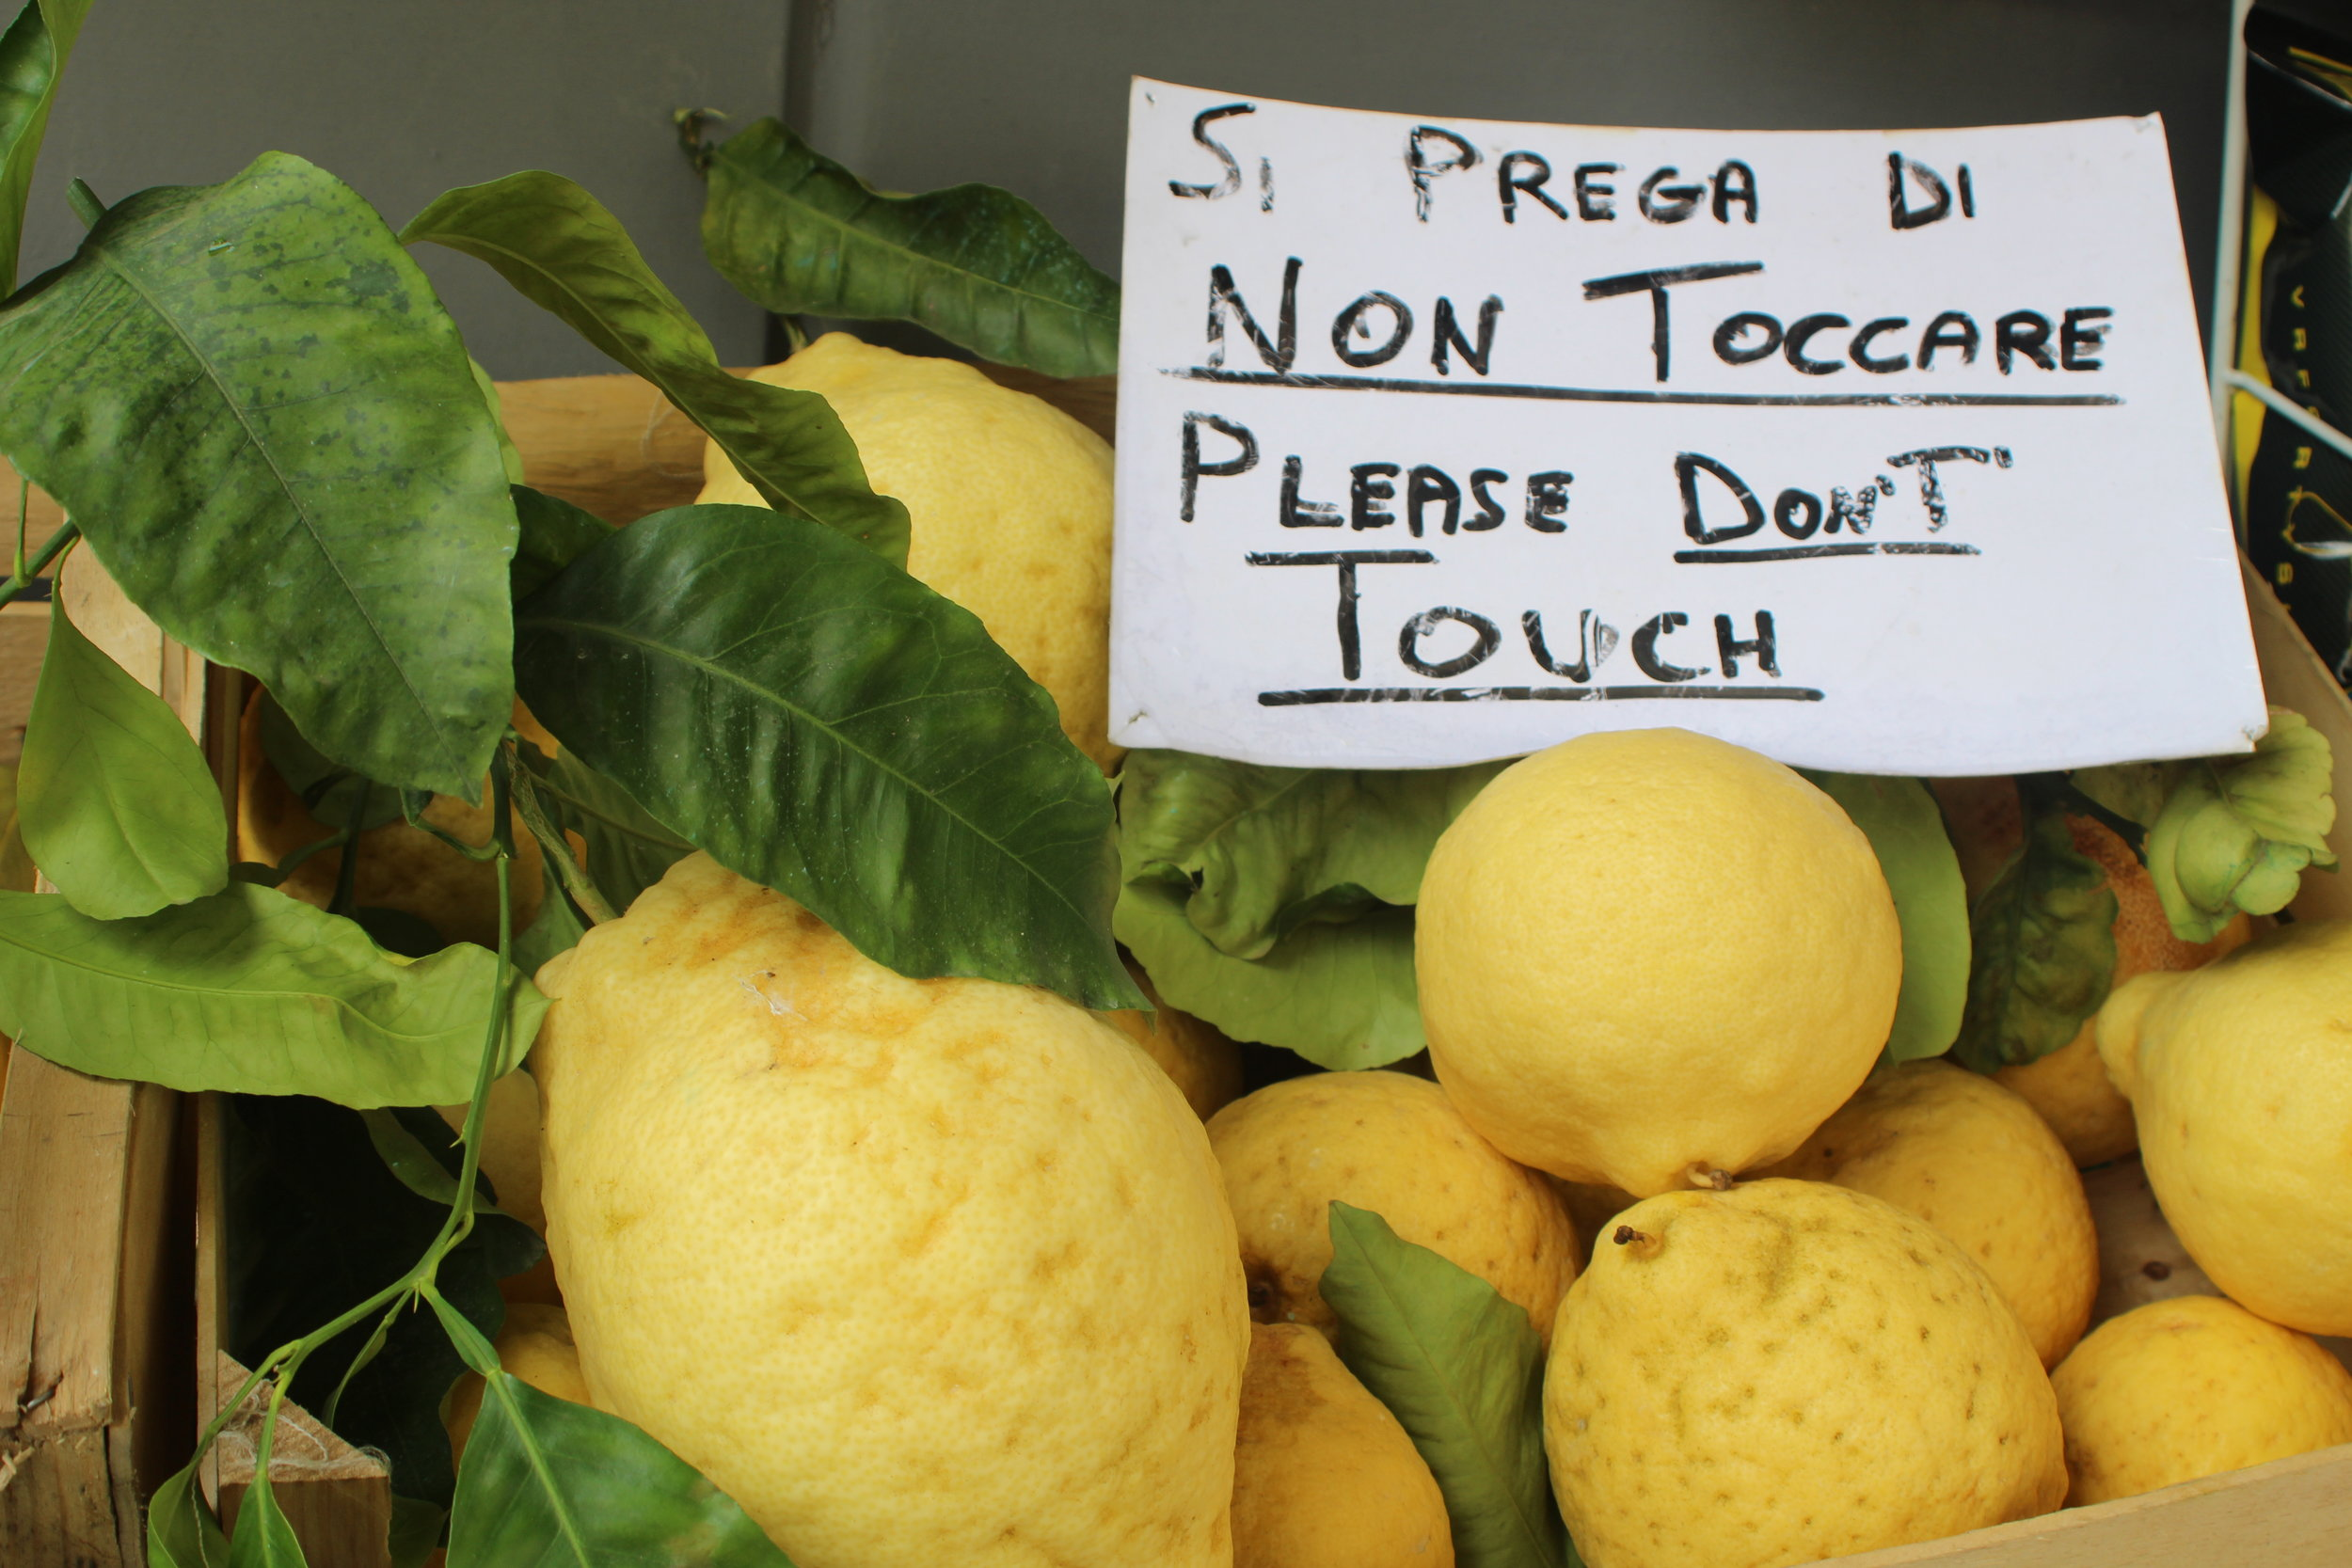 These lemons might not be pretty, but they make an amazing limoncello.